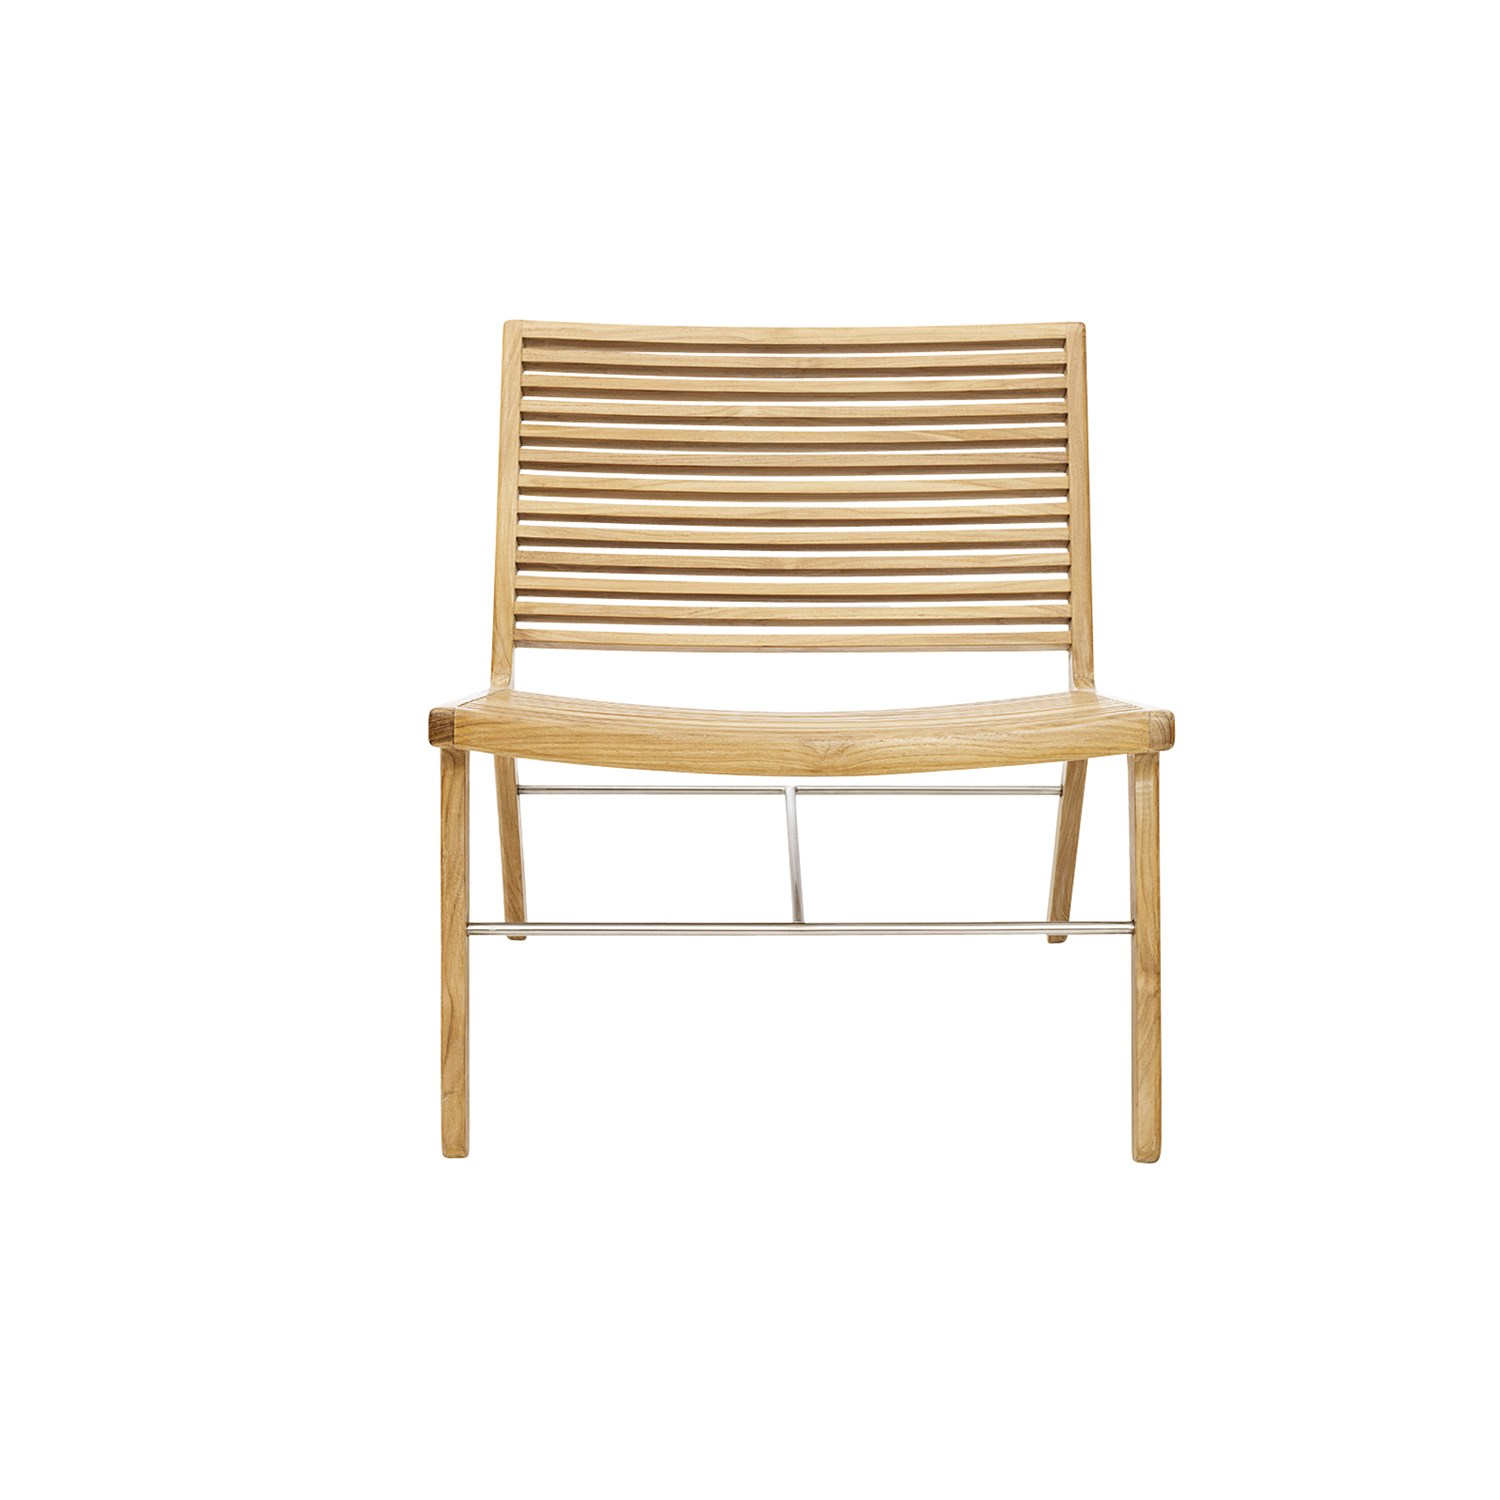 Scanteak - RIB, Lounge Chair